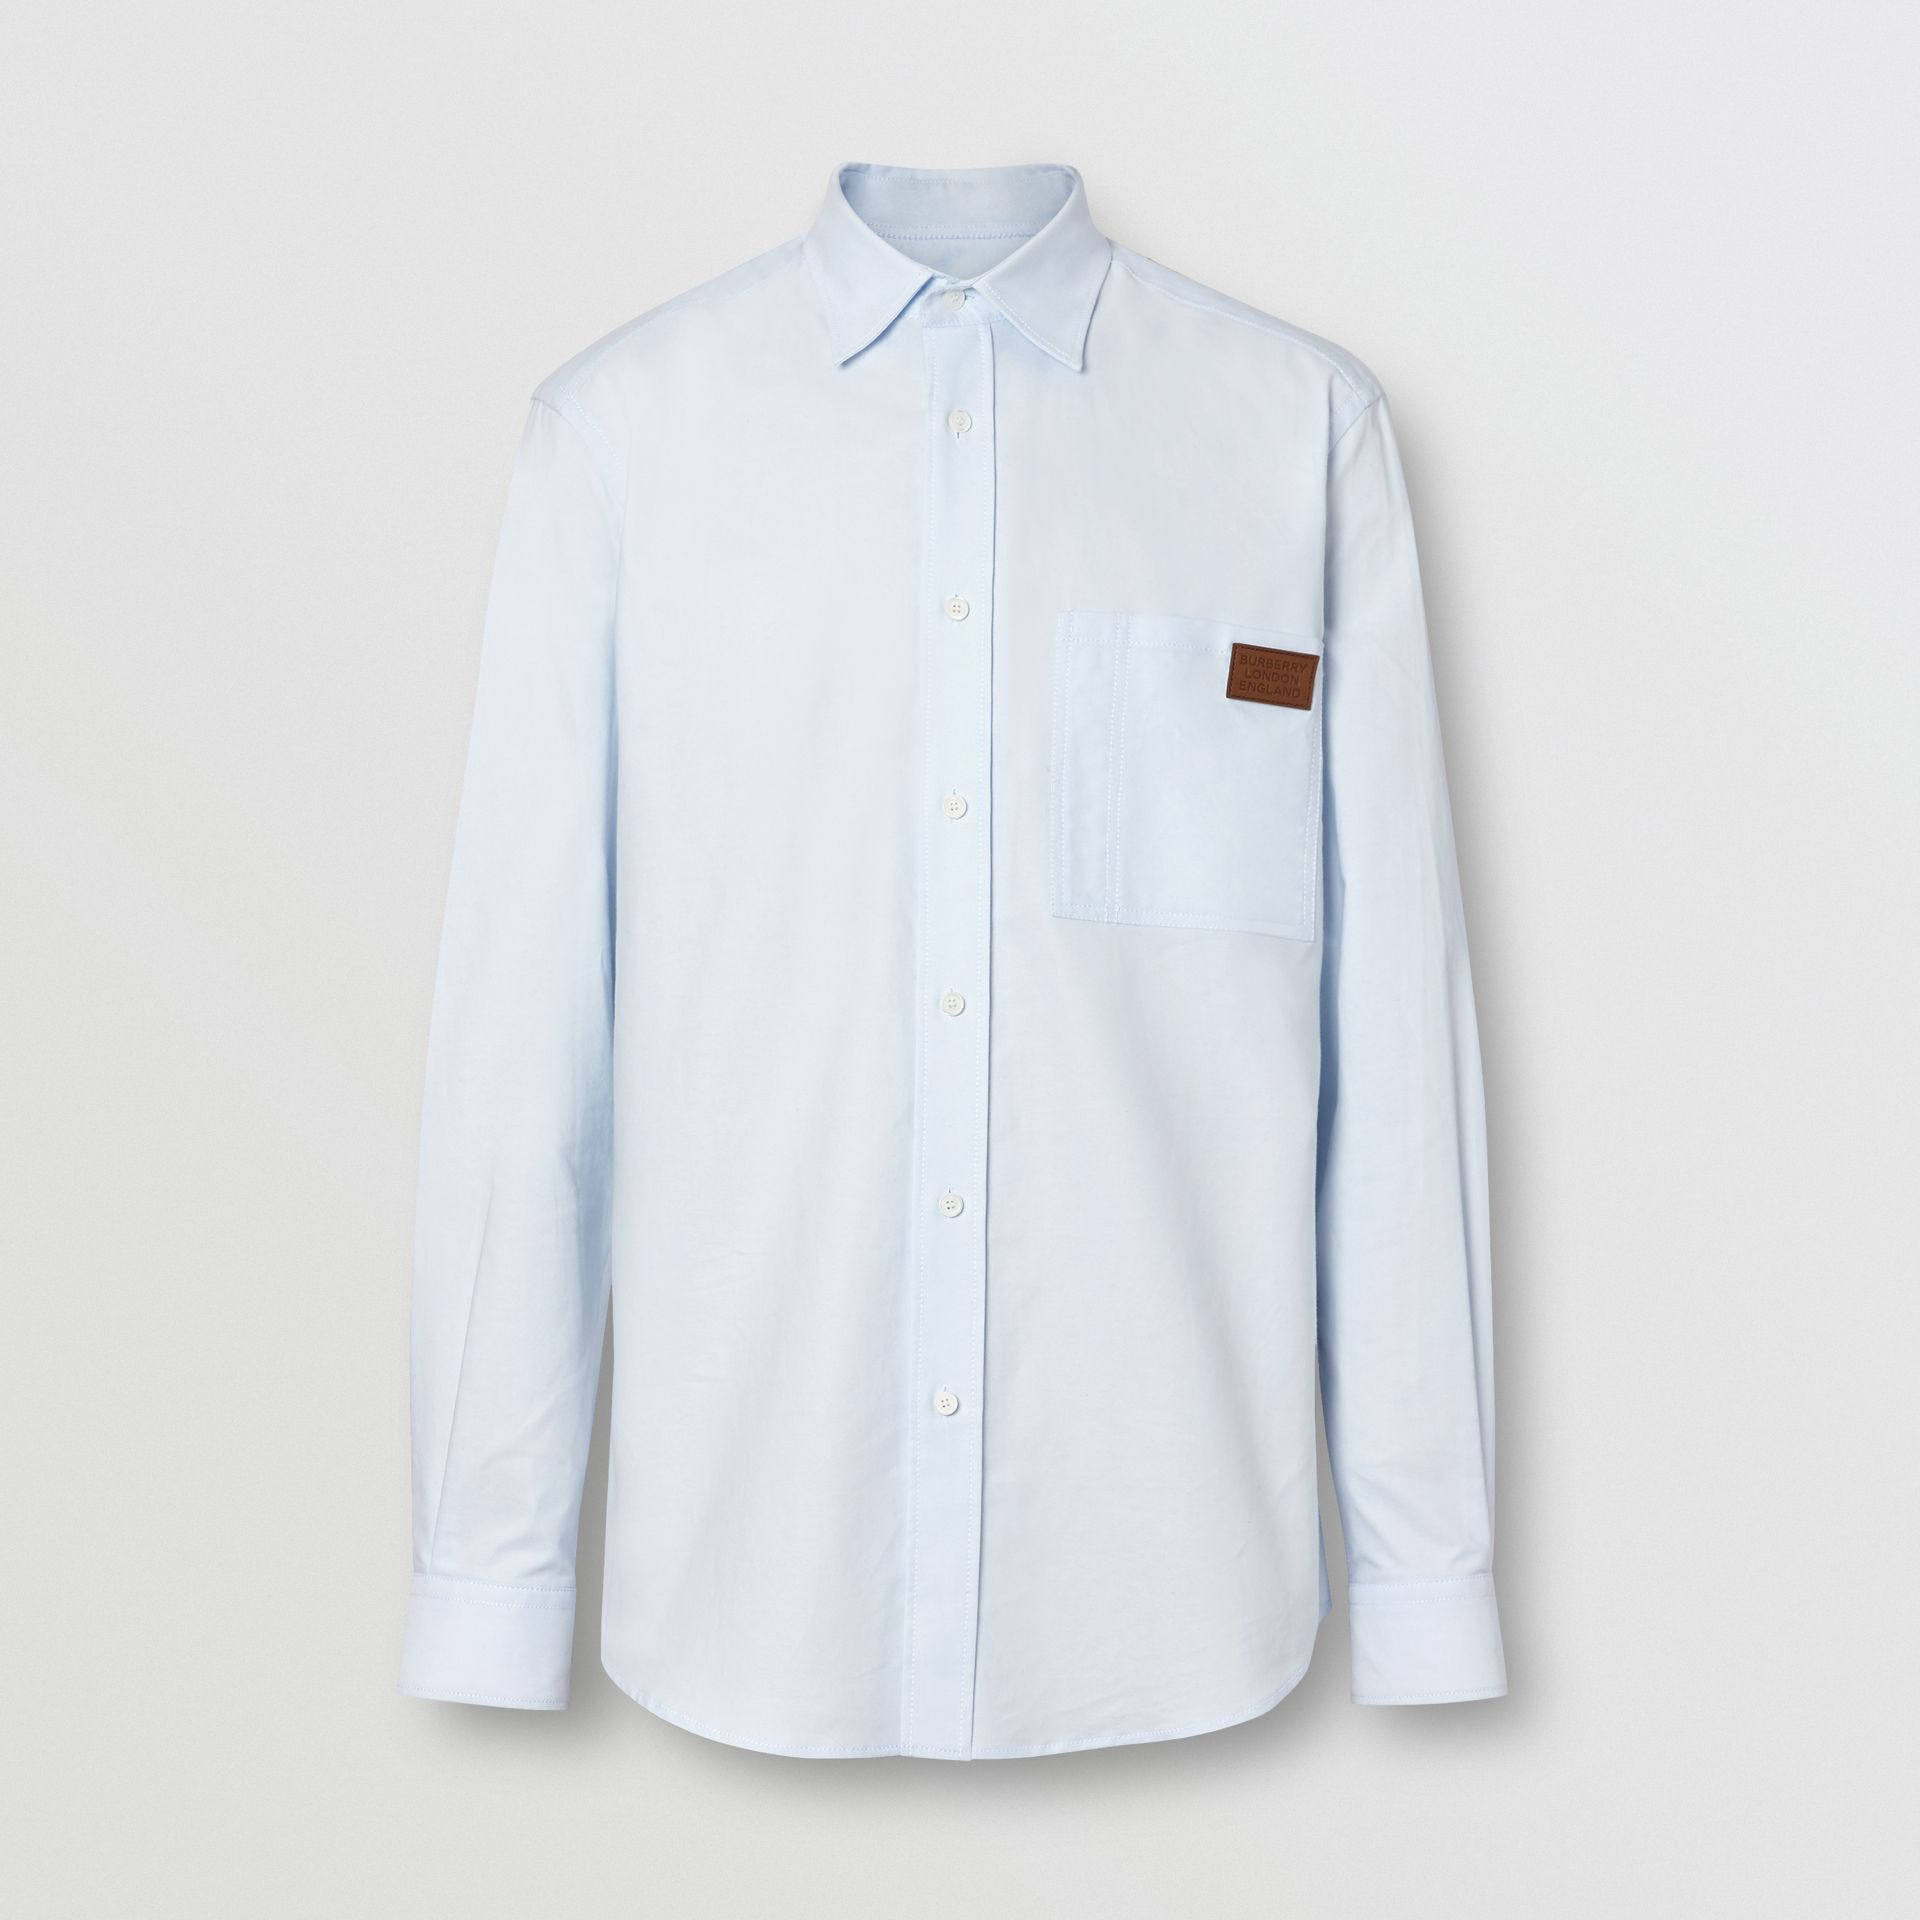 Logo Detail Cotton Oxford Shirt in Sky Blue - Men | Burberry Hong Kong - gallery image 3